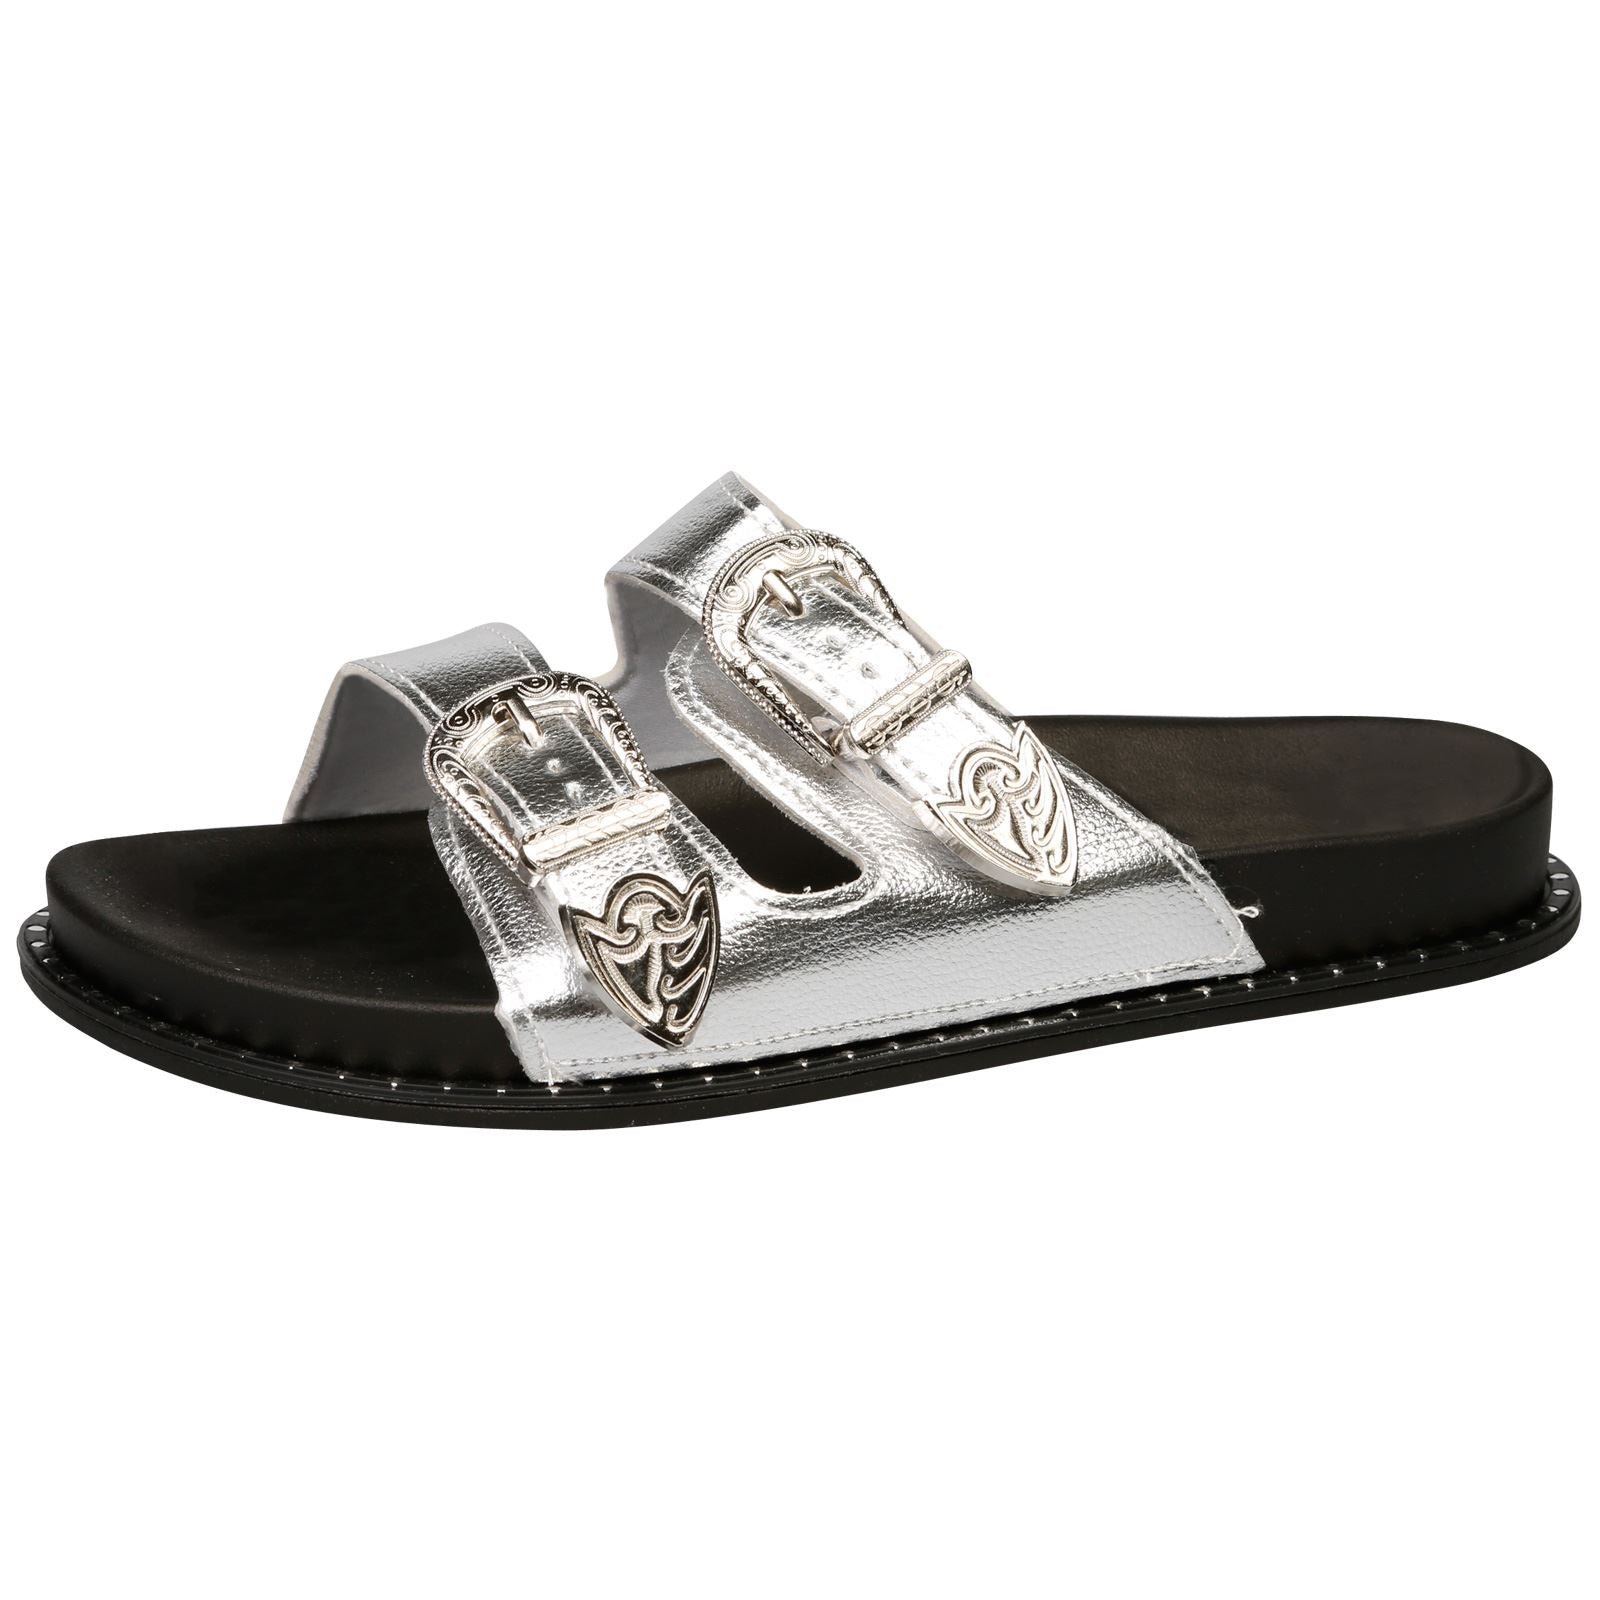 Harmoni Buckle Detail Flat Sandals in Silver - Feet First Fashion